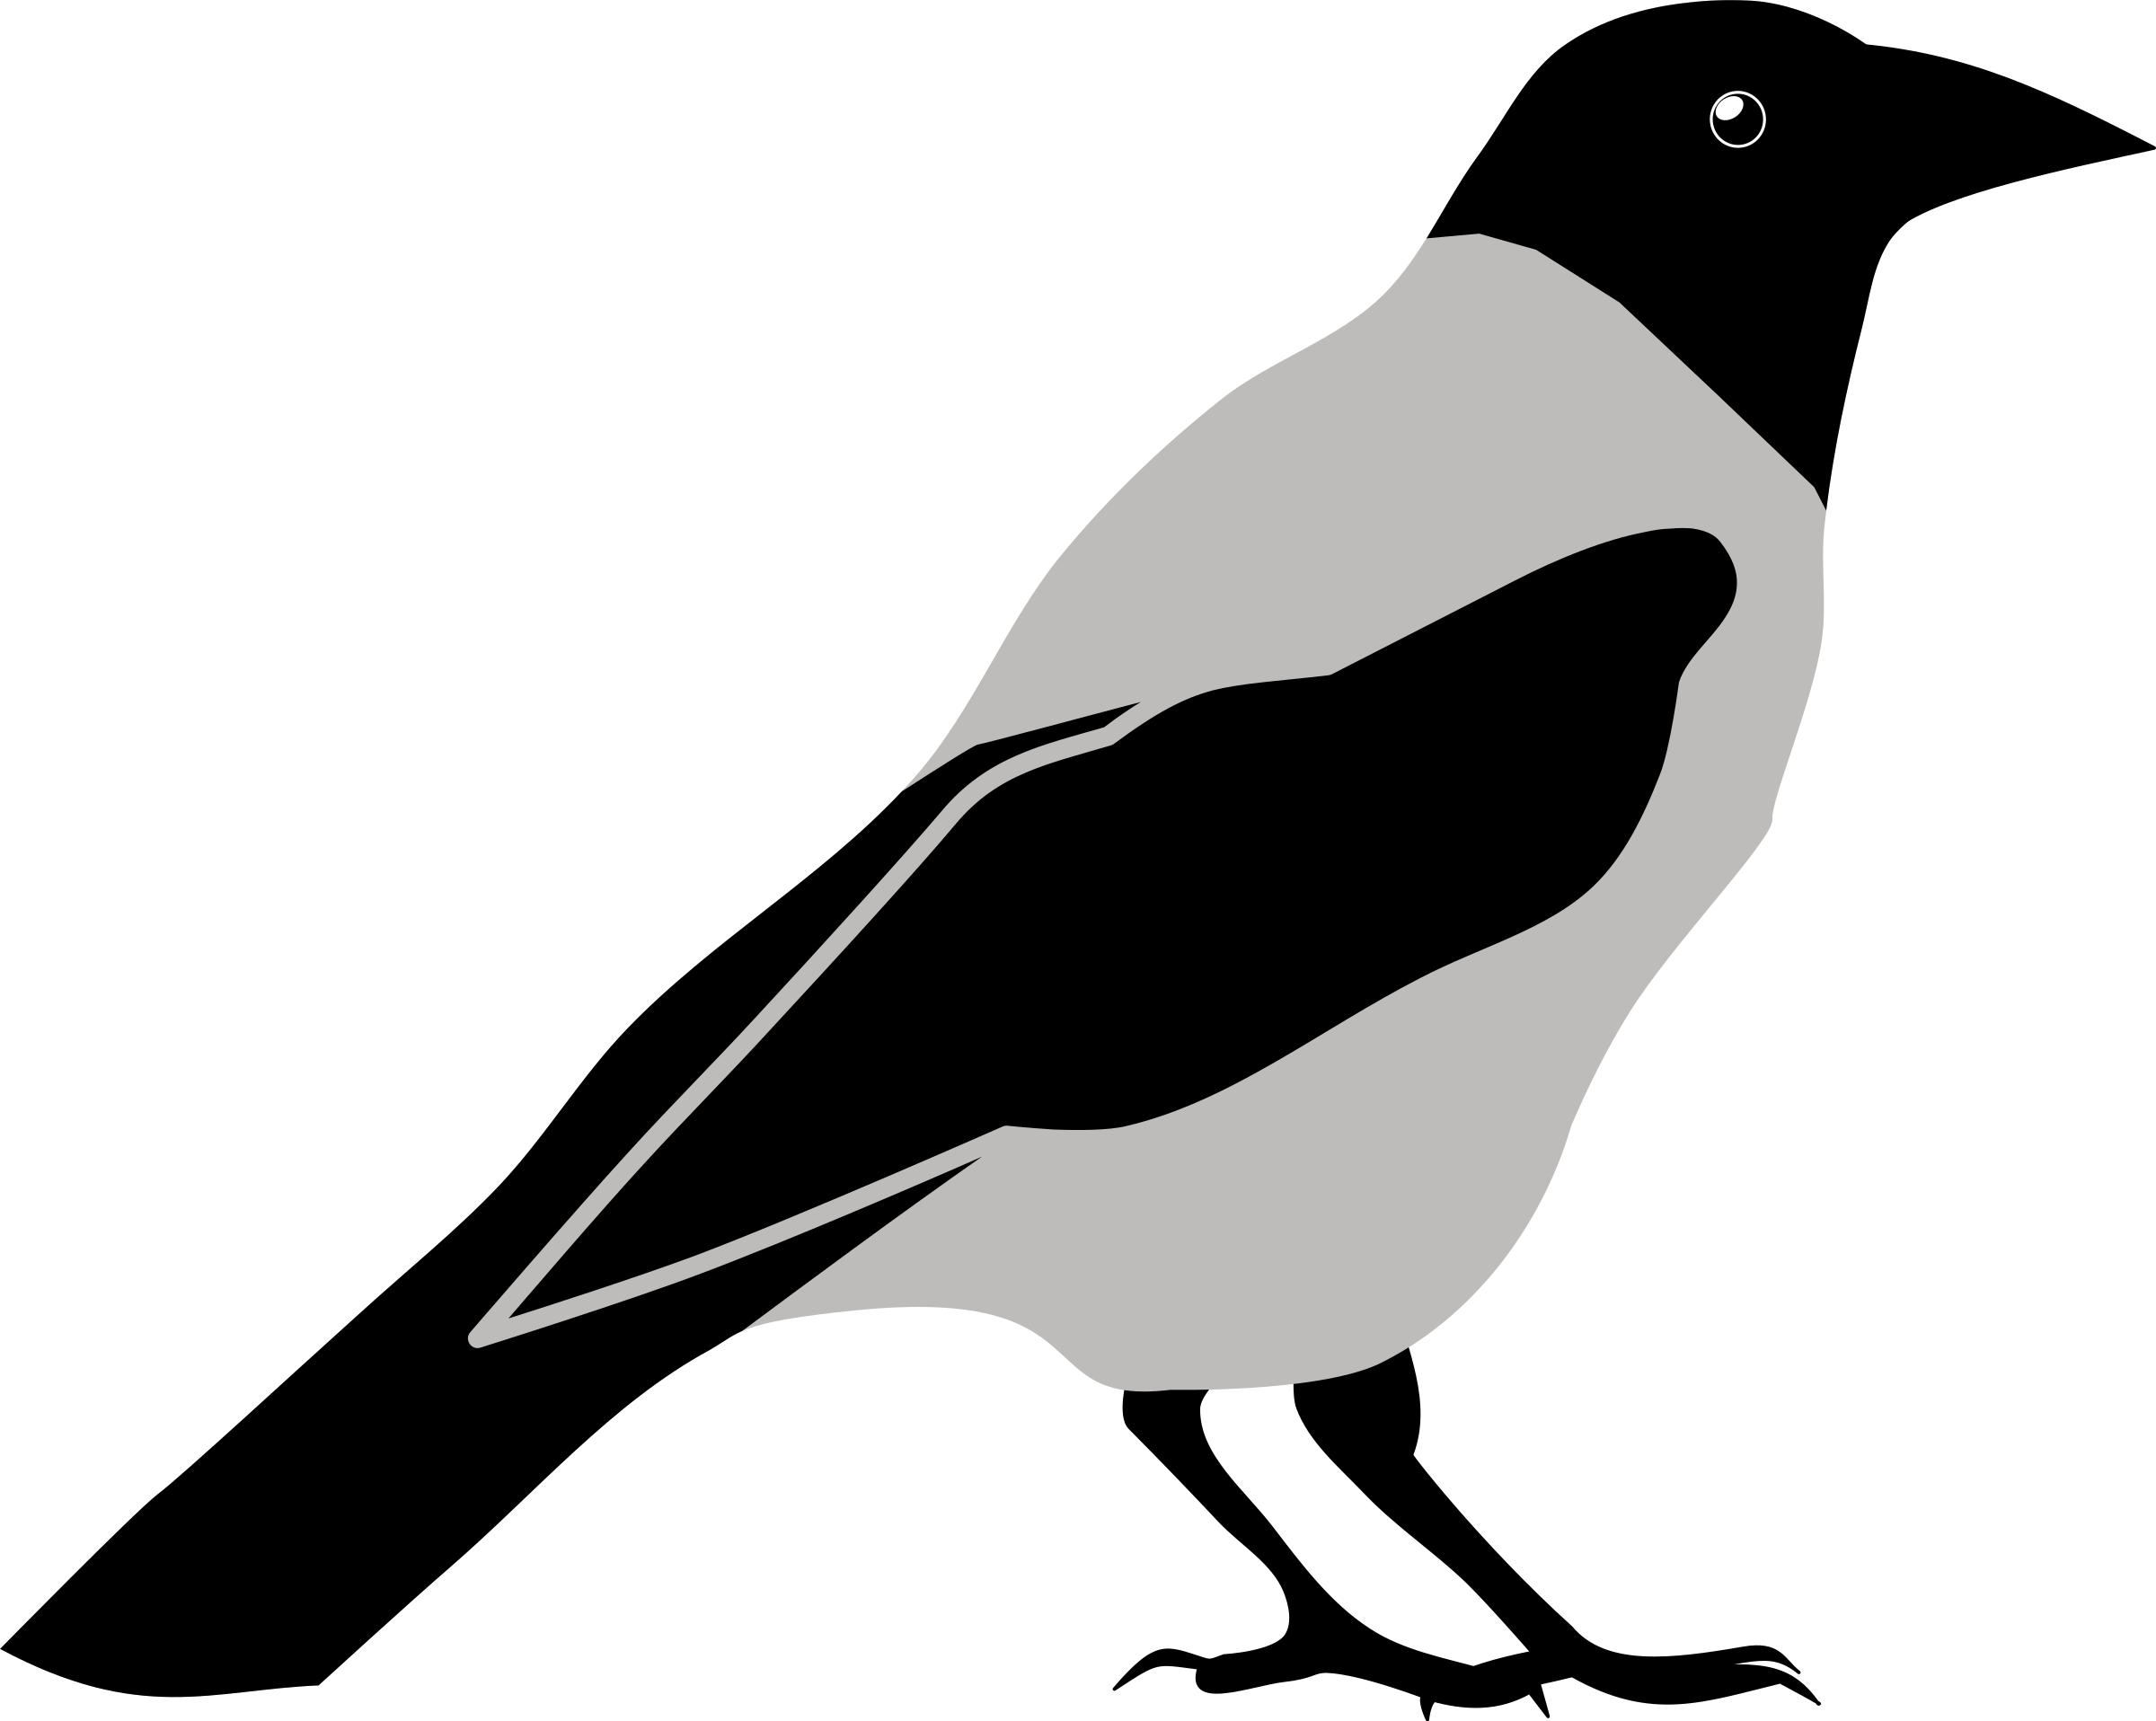 Crow clipart #5, Download drawings